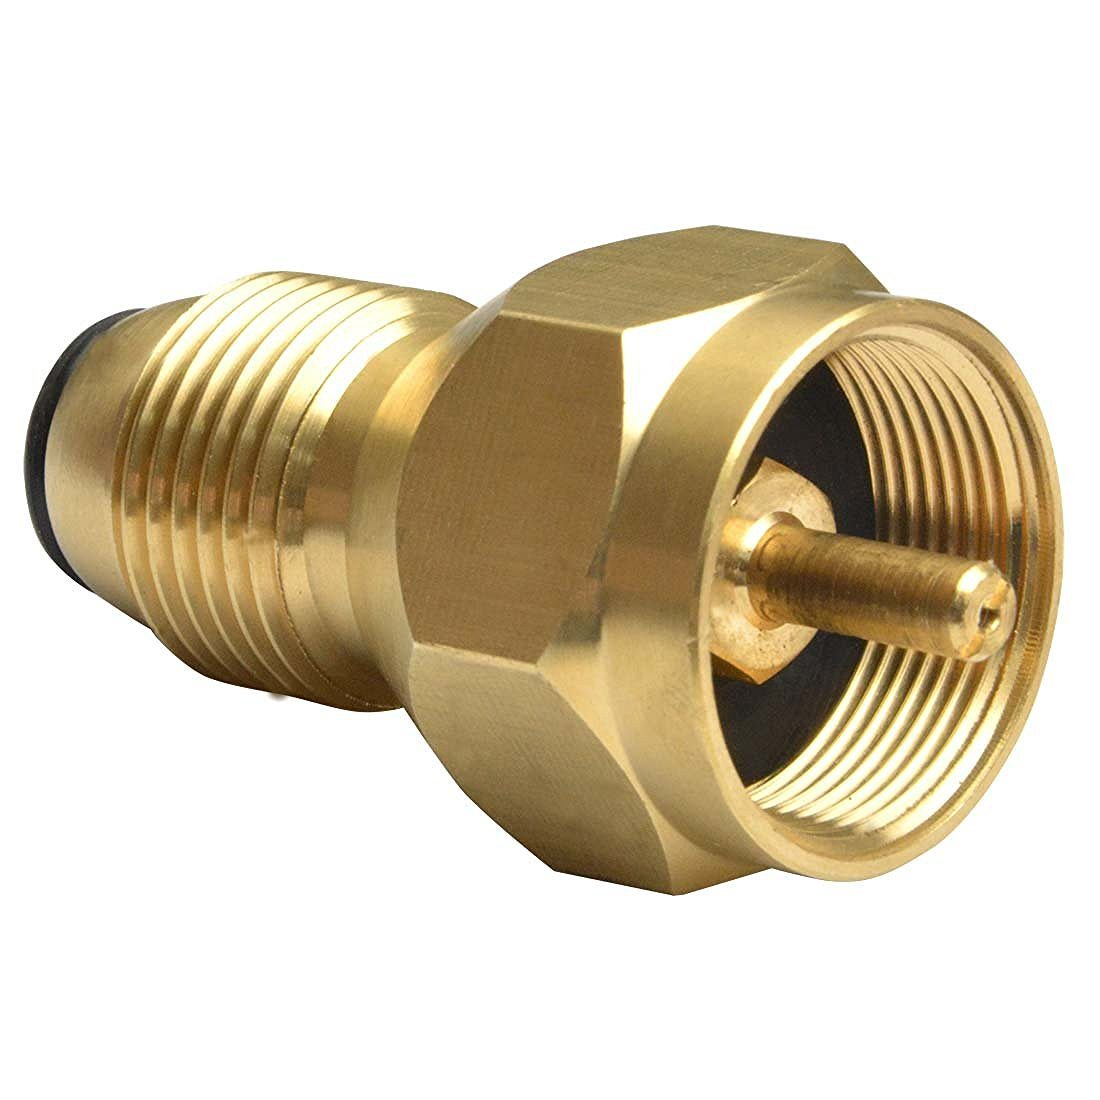 100% Solid Brass Regulator Valve Accessory for All 1 Lb Tank Small Cylinders